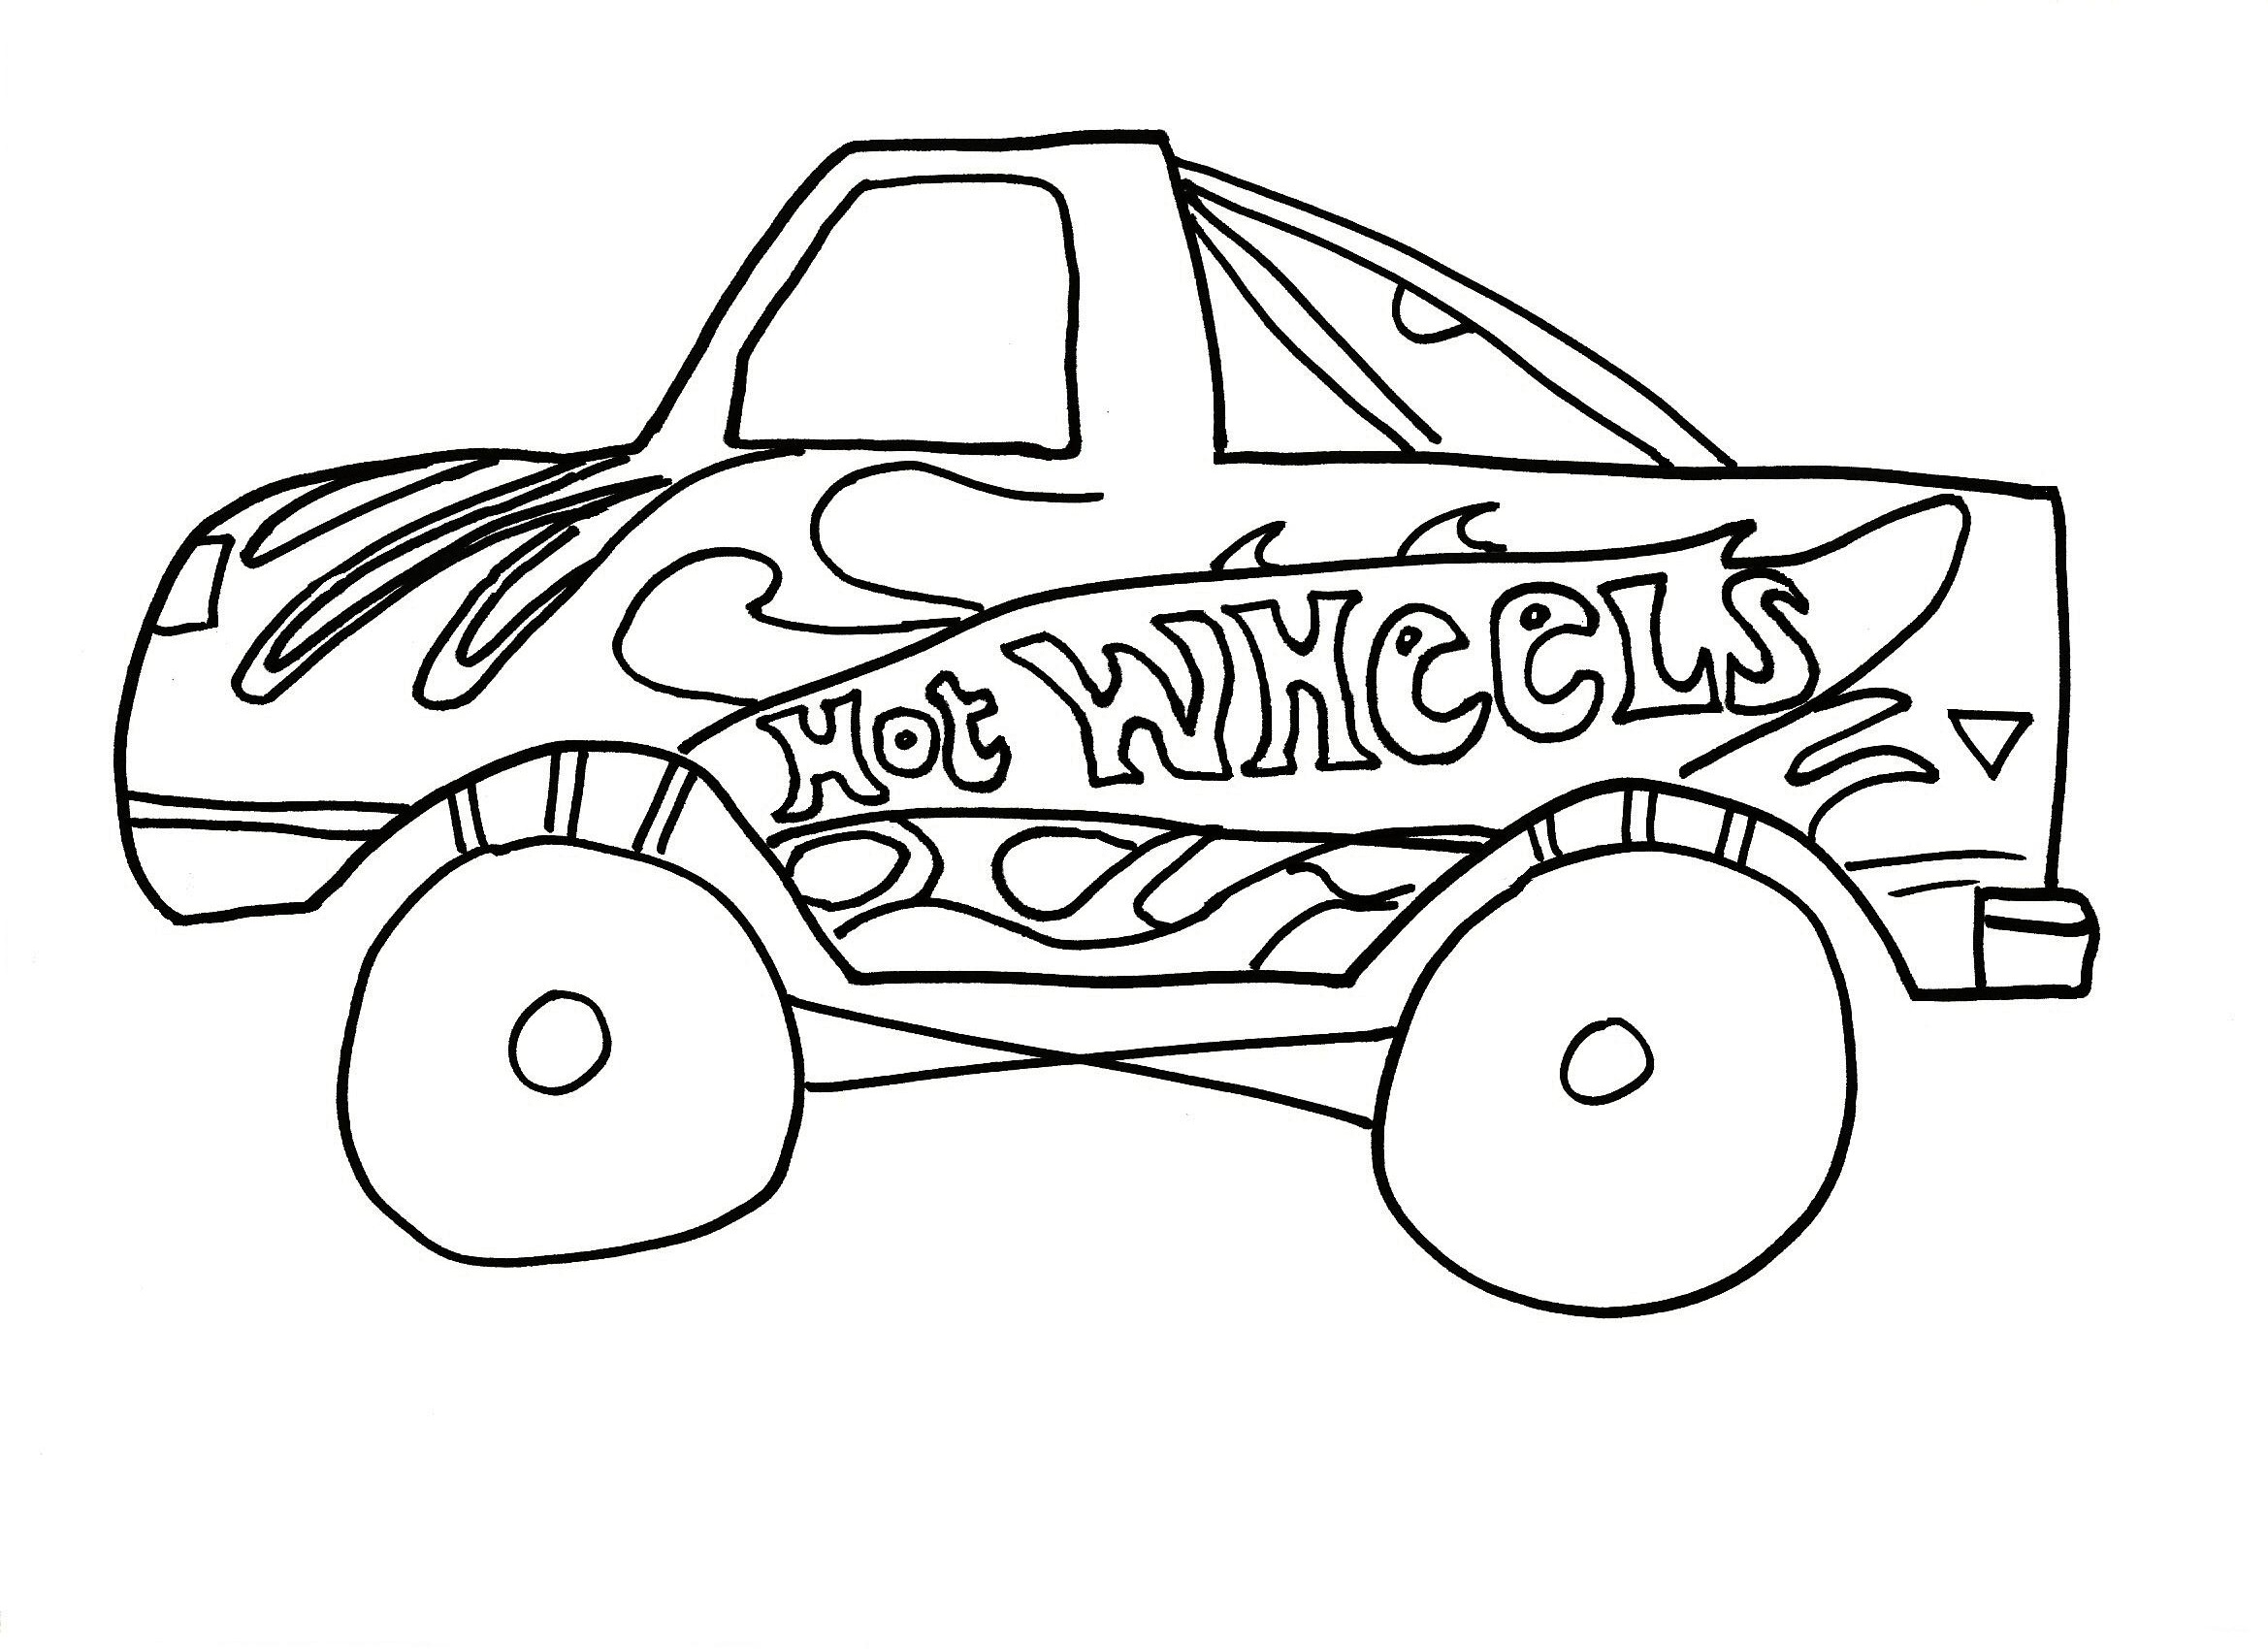 Coloring pages for hot wheels - Hot Wheels Coloring Pages Print